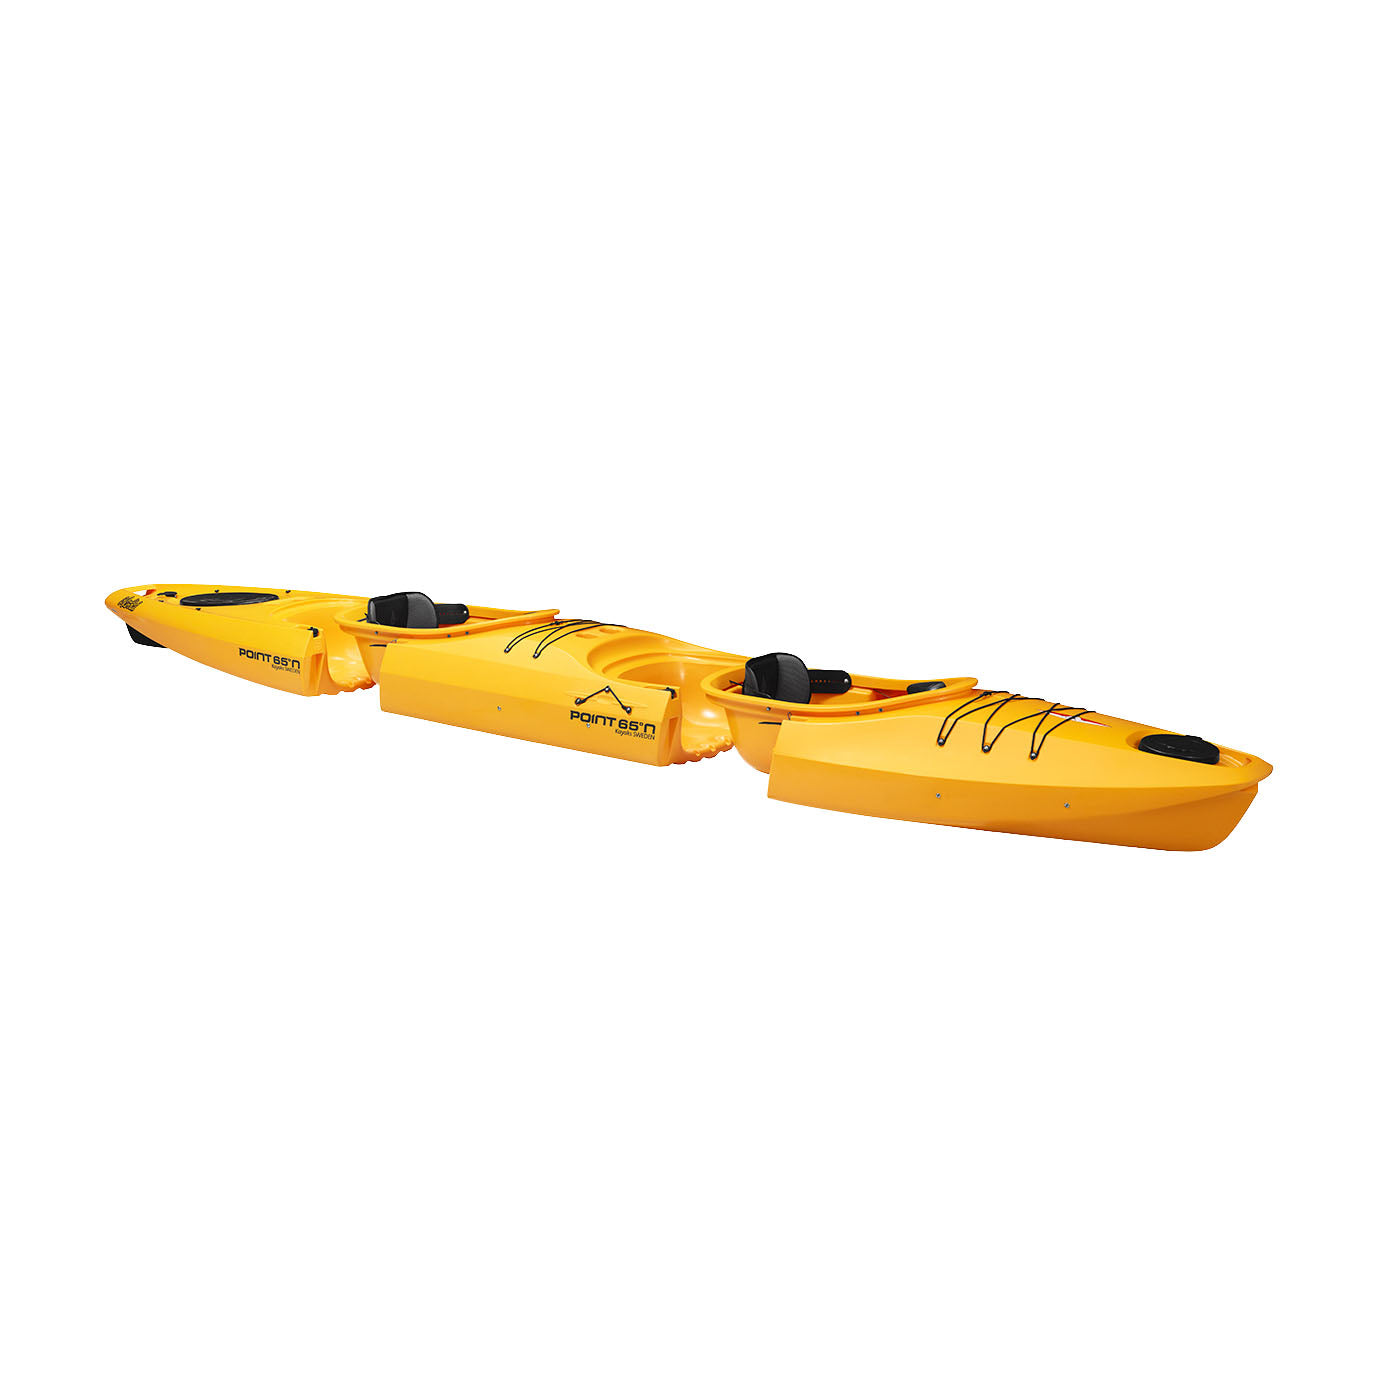 Point 65 Martini GTX Tandem Modular Kayak - Yellow - Kayak Creek